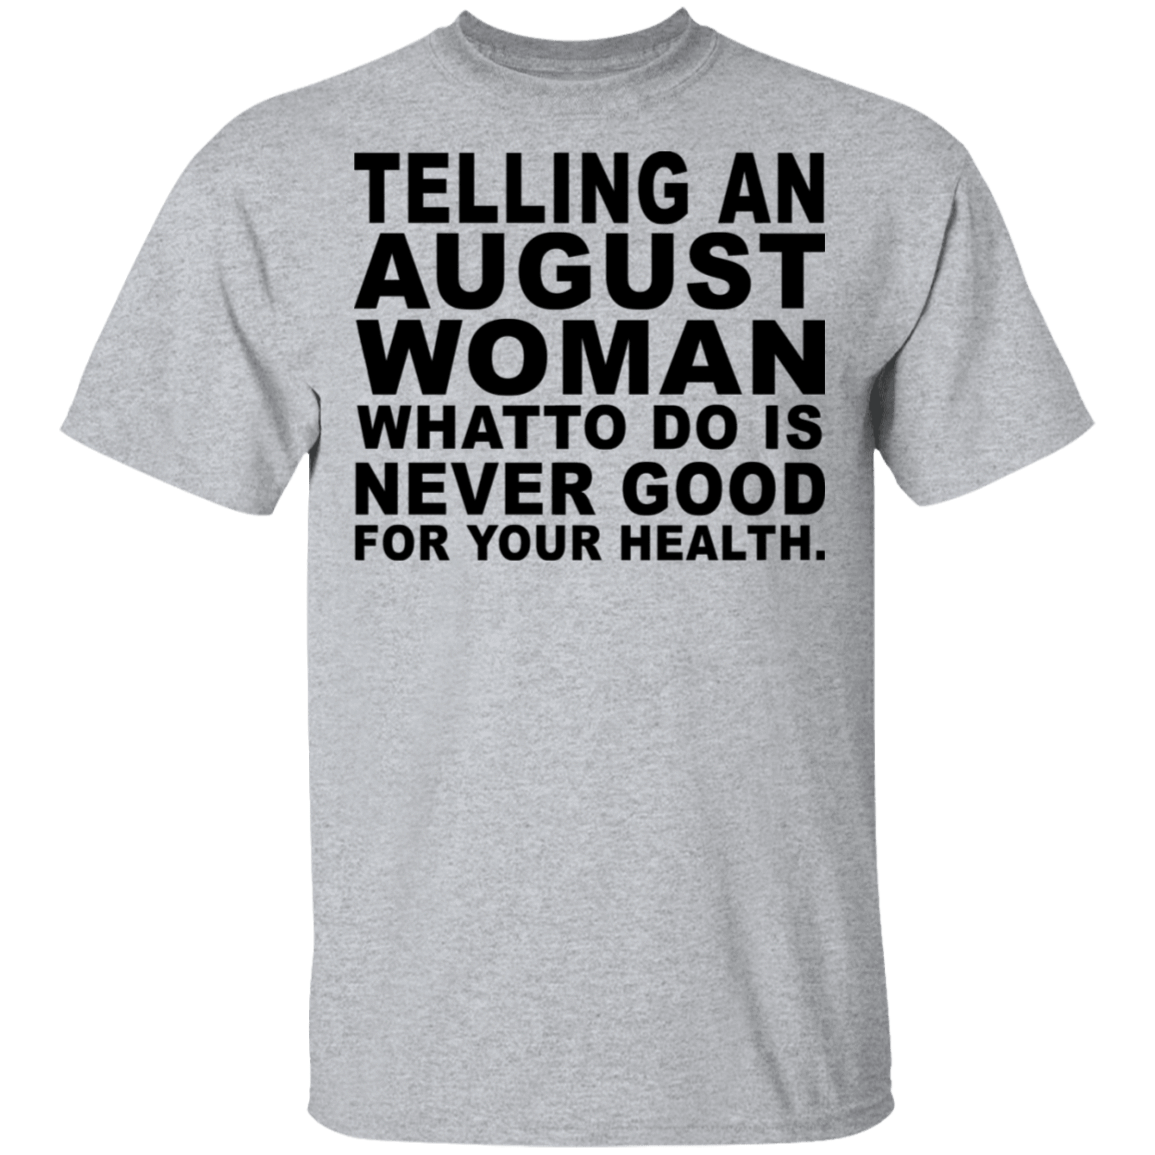 Telling An August Woman What To Do Is Never Good T-Shirts, Hoodies, Tank 22-115-79463211-254 - Tee Ript